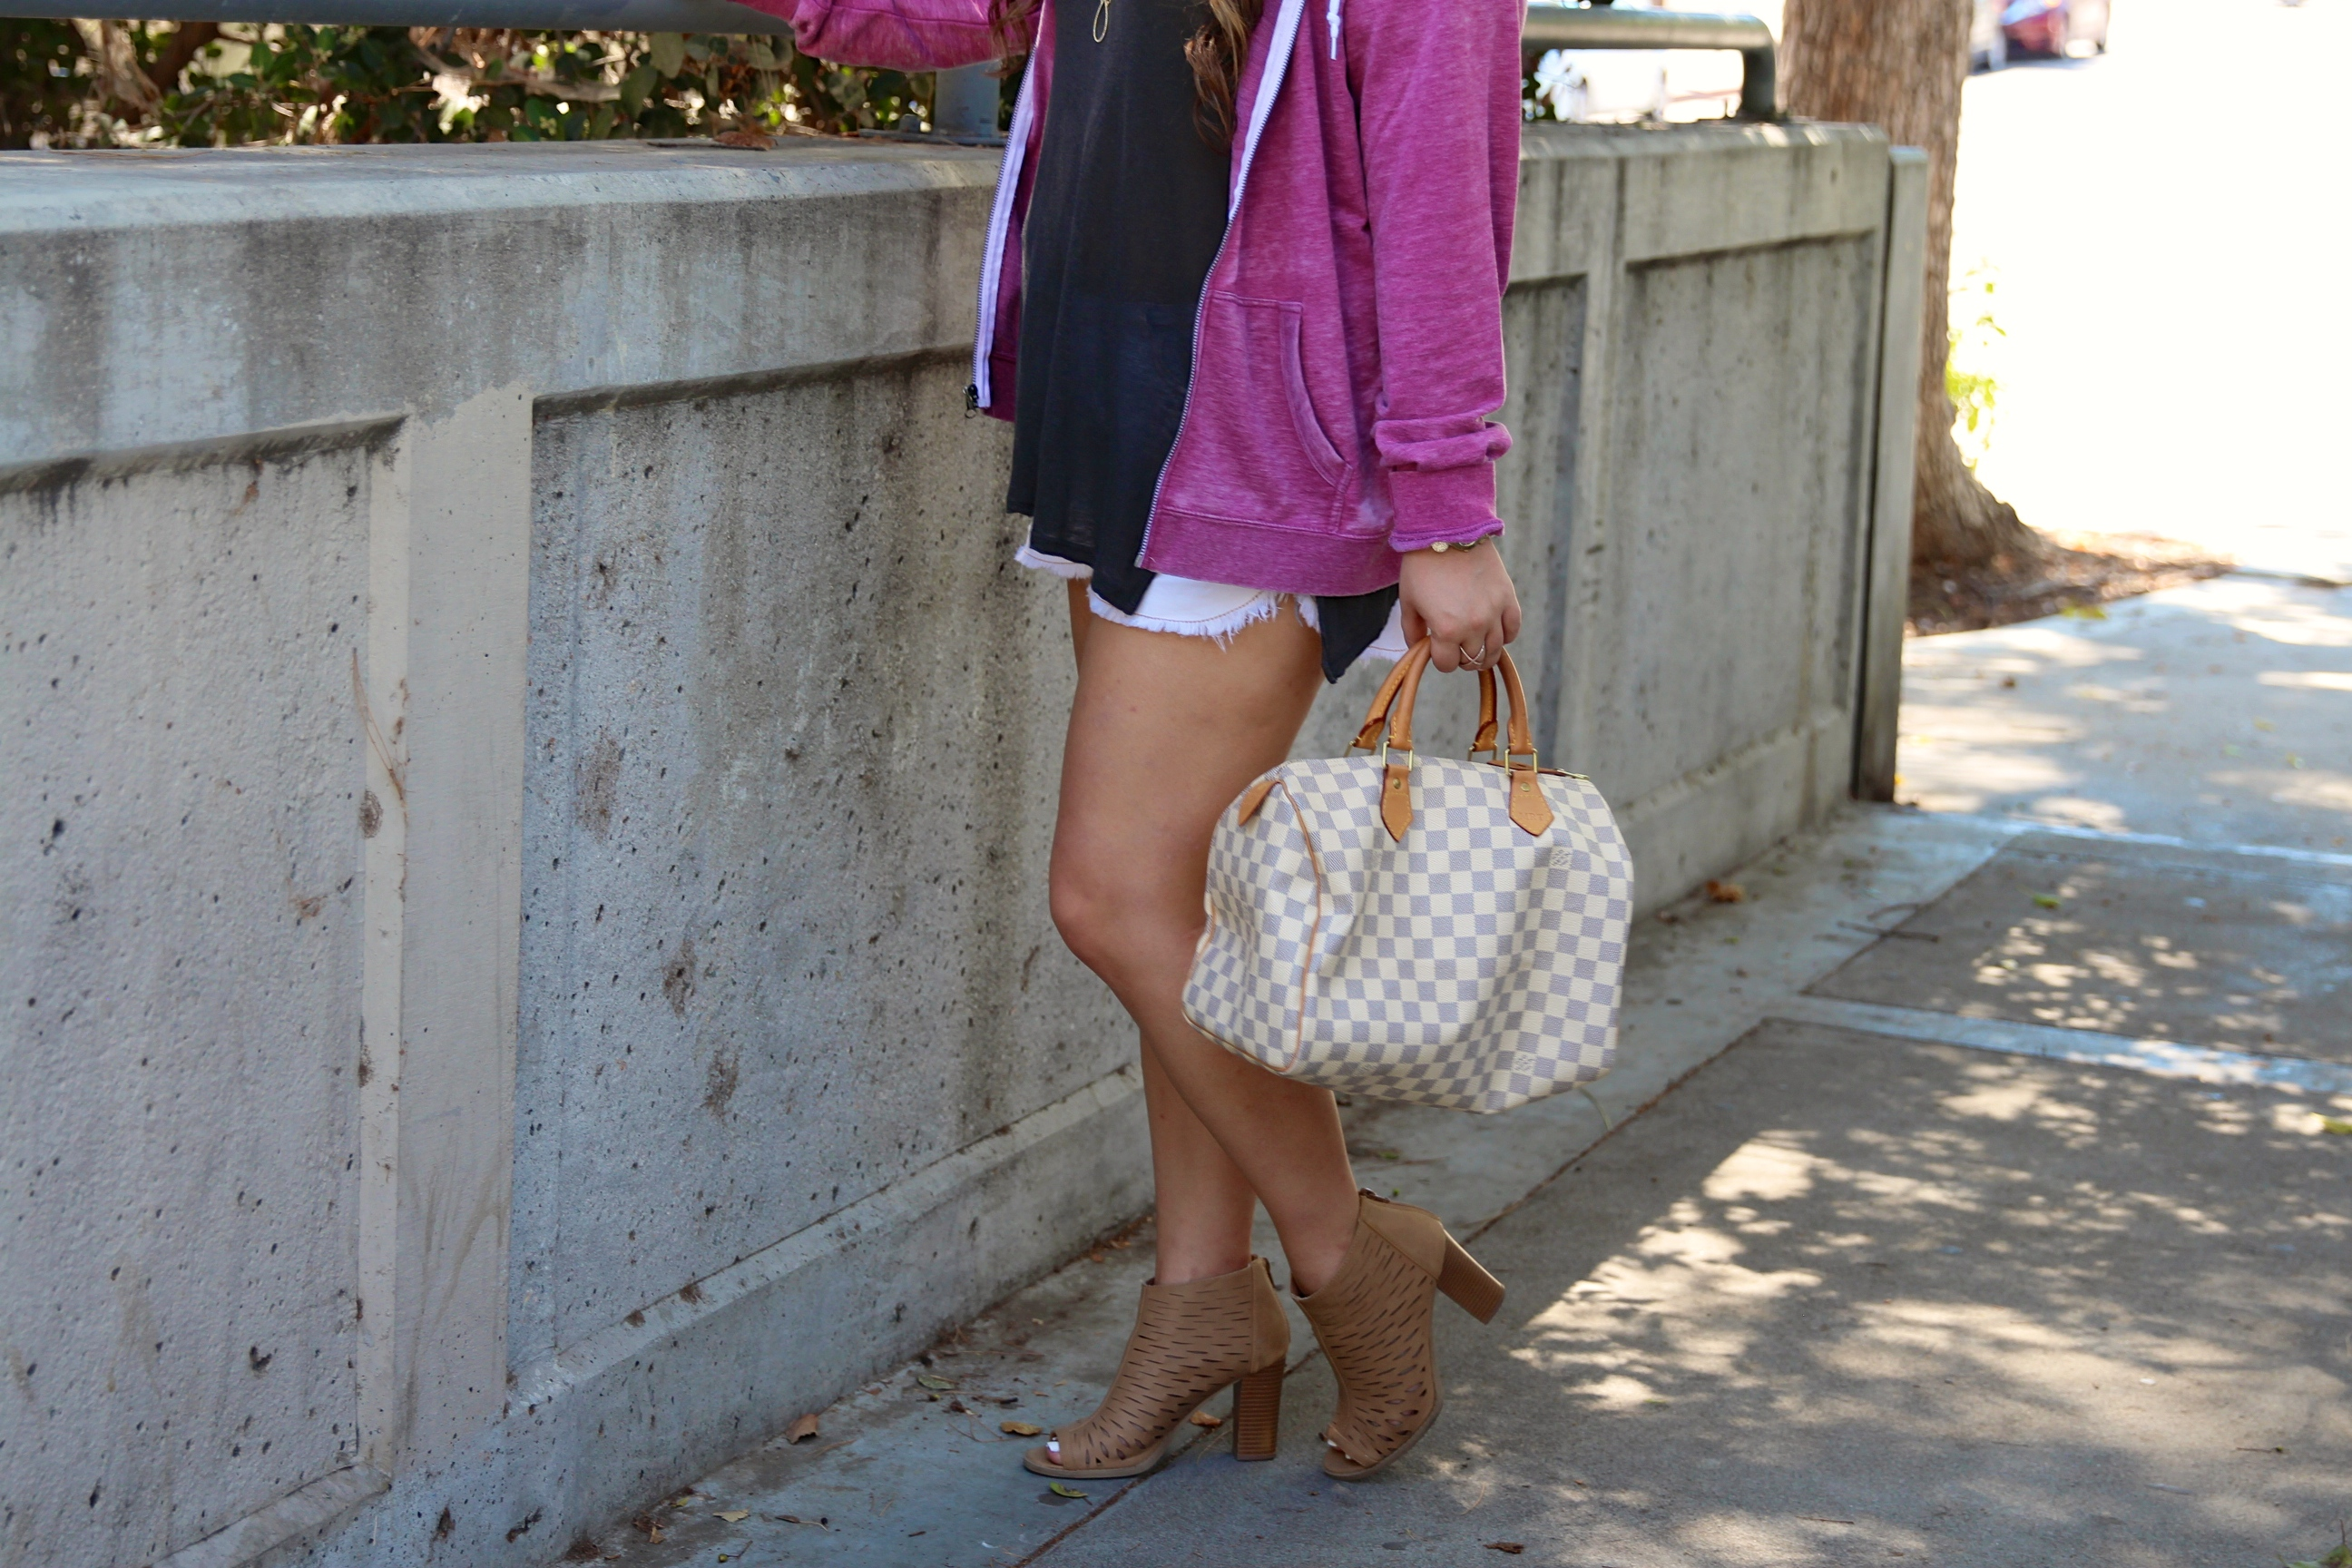 missyonmadison, melissa tierney, cotton hood, pink hoodie, pink zip up hoodie, discount codes, retail me not, laser cut booties, kohls, kohls booties, tan booties, tan peep toe booties, tan booties, gray vintage tee, urban outfitters tee, louis vuitton, louis vuitton speedy bag, ray bans, blue aviators, fall style, white denim shorts, white cut off shorts, fashion blogger, fall trends, casual wear, casual vibes, burn out hoodie,